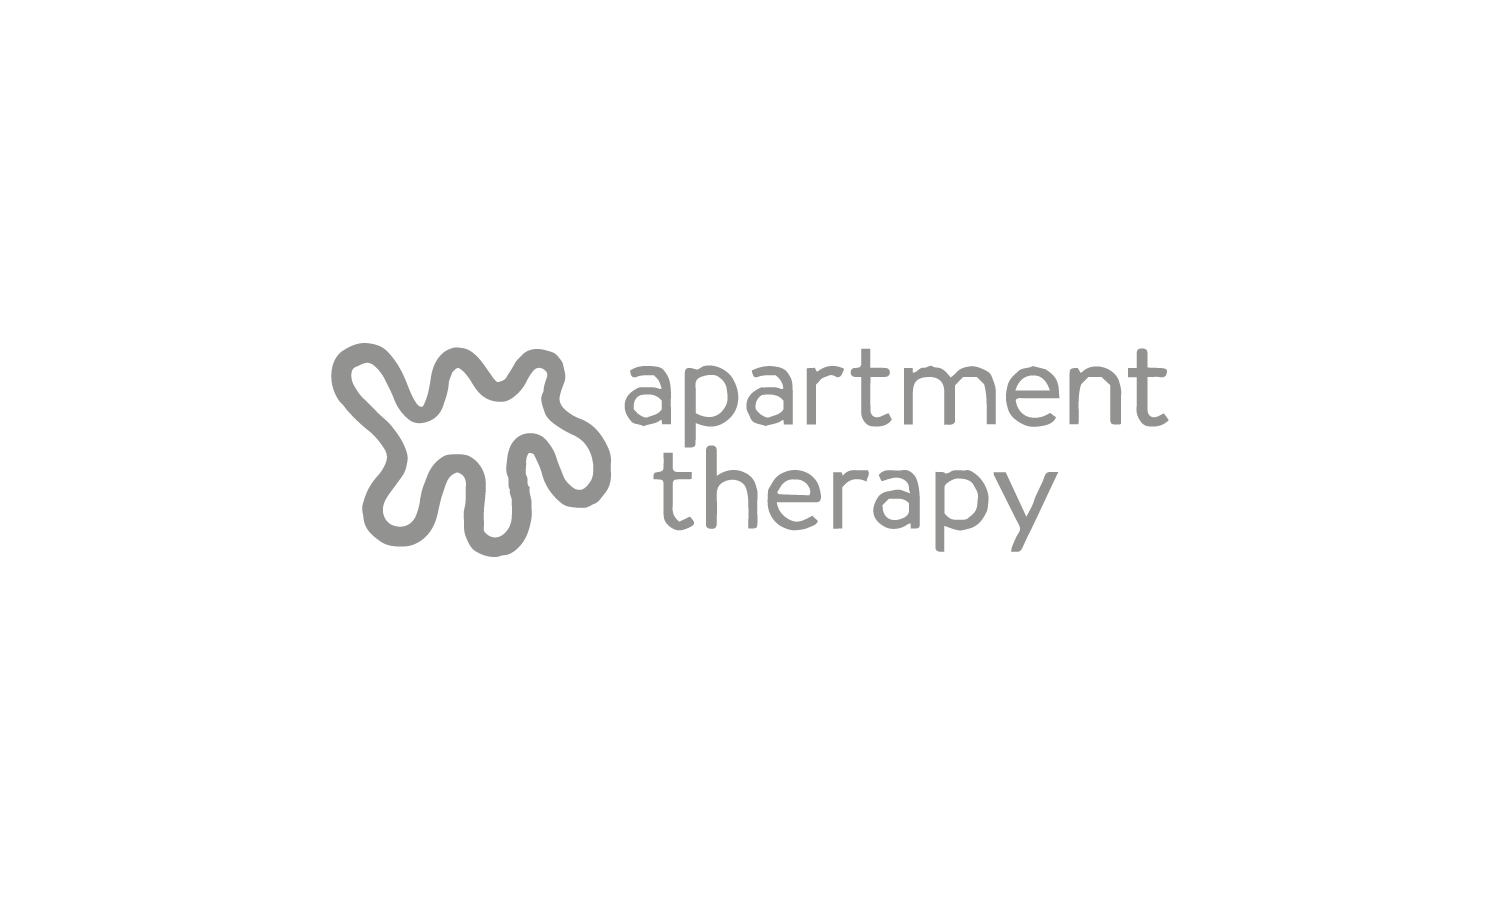 apartment+therapy